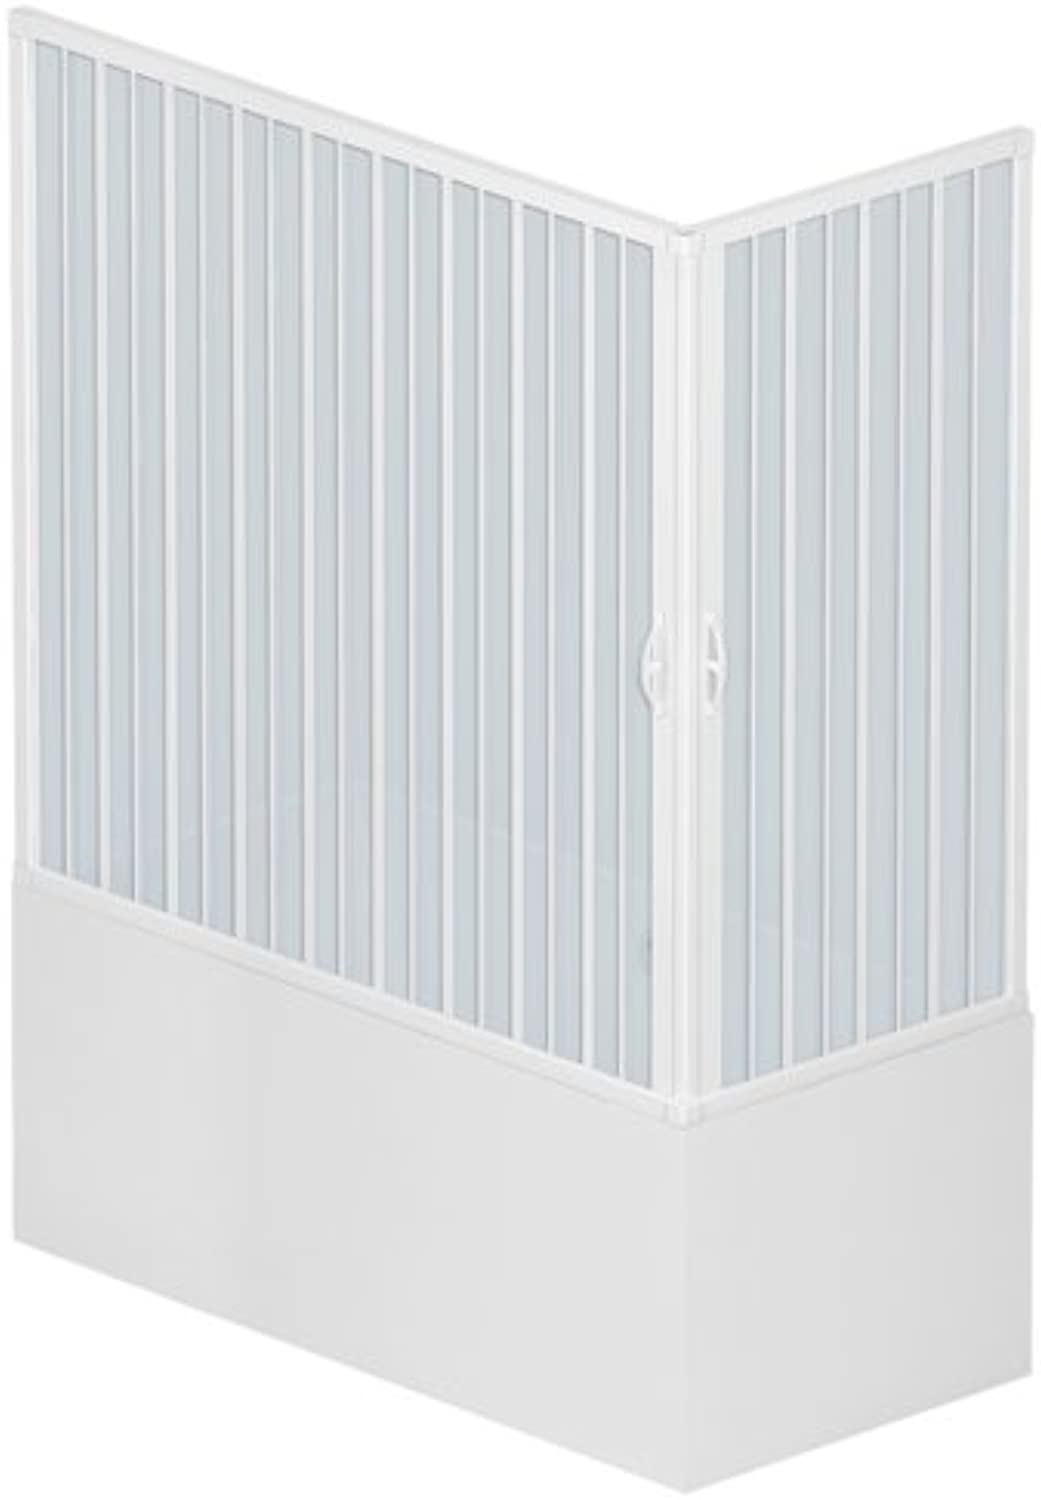 Roll Plastic BGAL1CONCC28150?760?mm Wetroom Shower Enclosure Size  70?x 150?cm x h 150?cm PVC Plastic 2?Wing Opening on the Corner?–?White